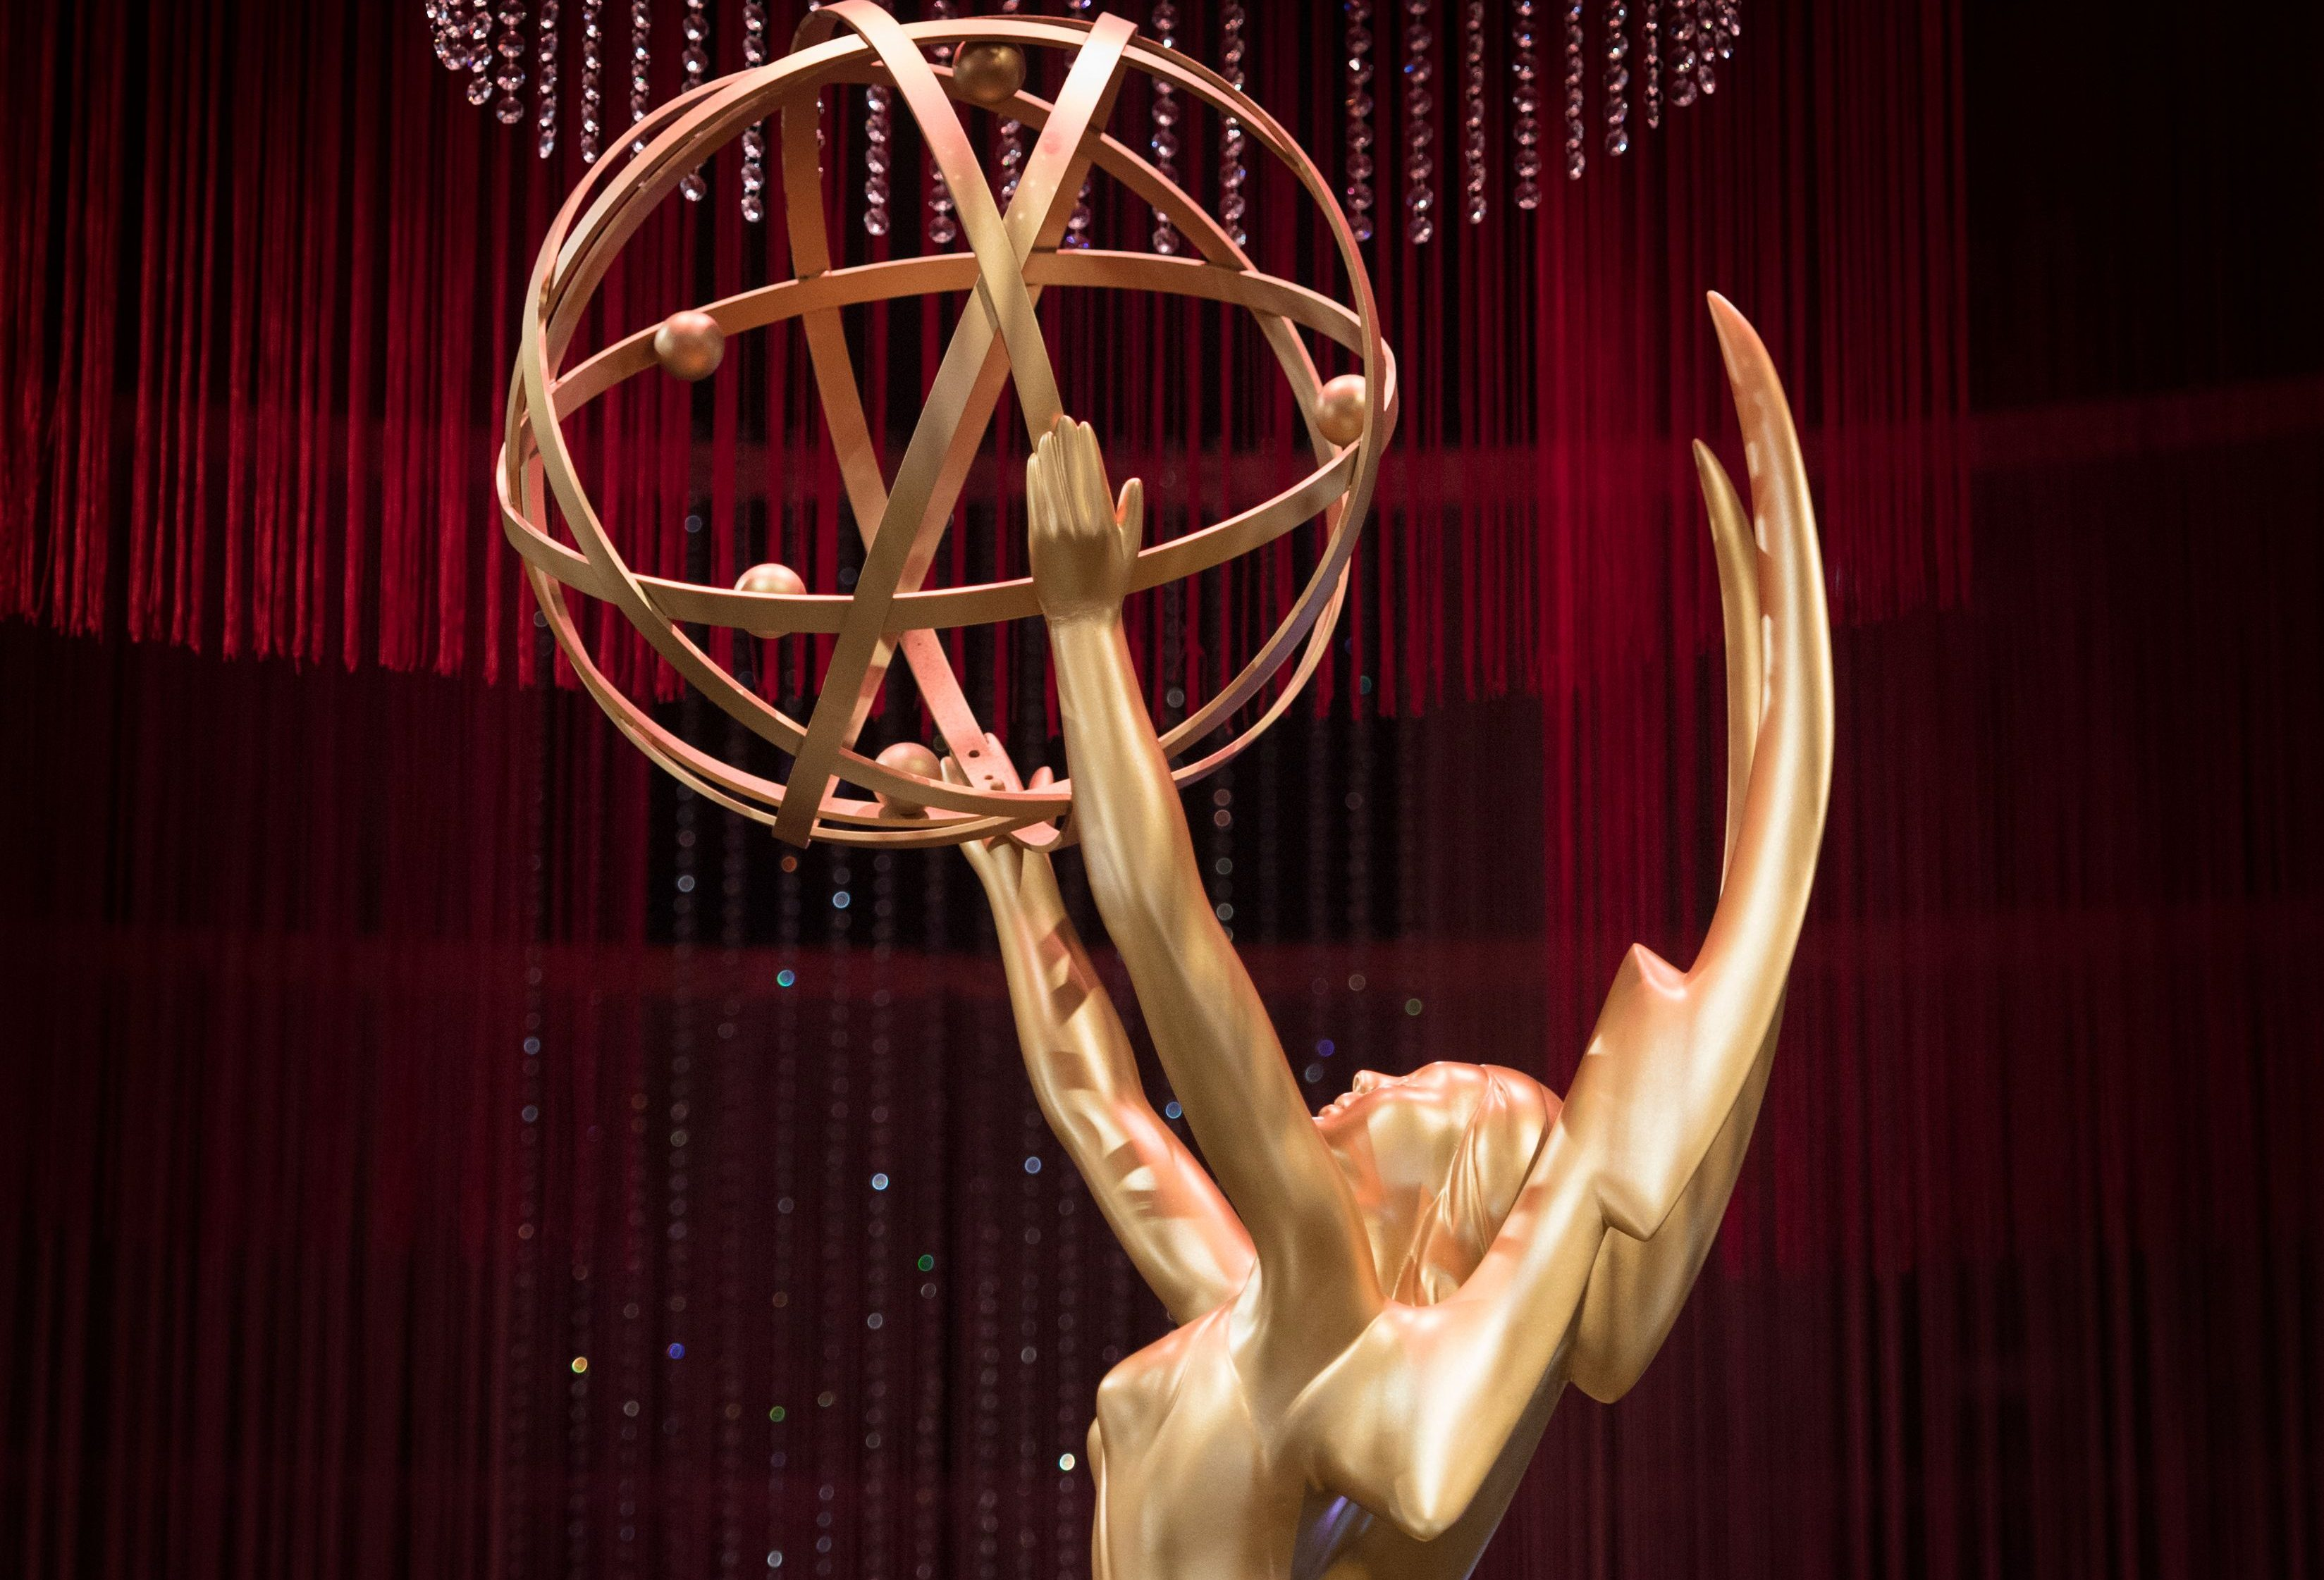 An Emmy statue is displayed at the 71st Emmy Awards Governors Ball press preview at LA Live in Los Angeles, California on September 12, 2019.